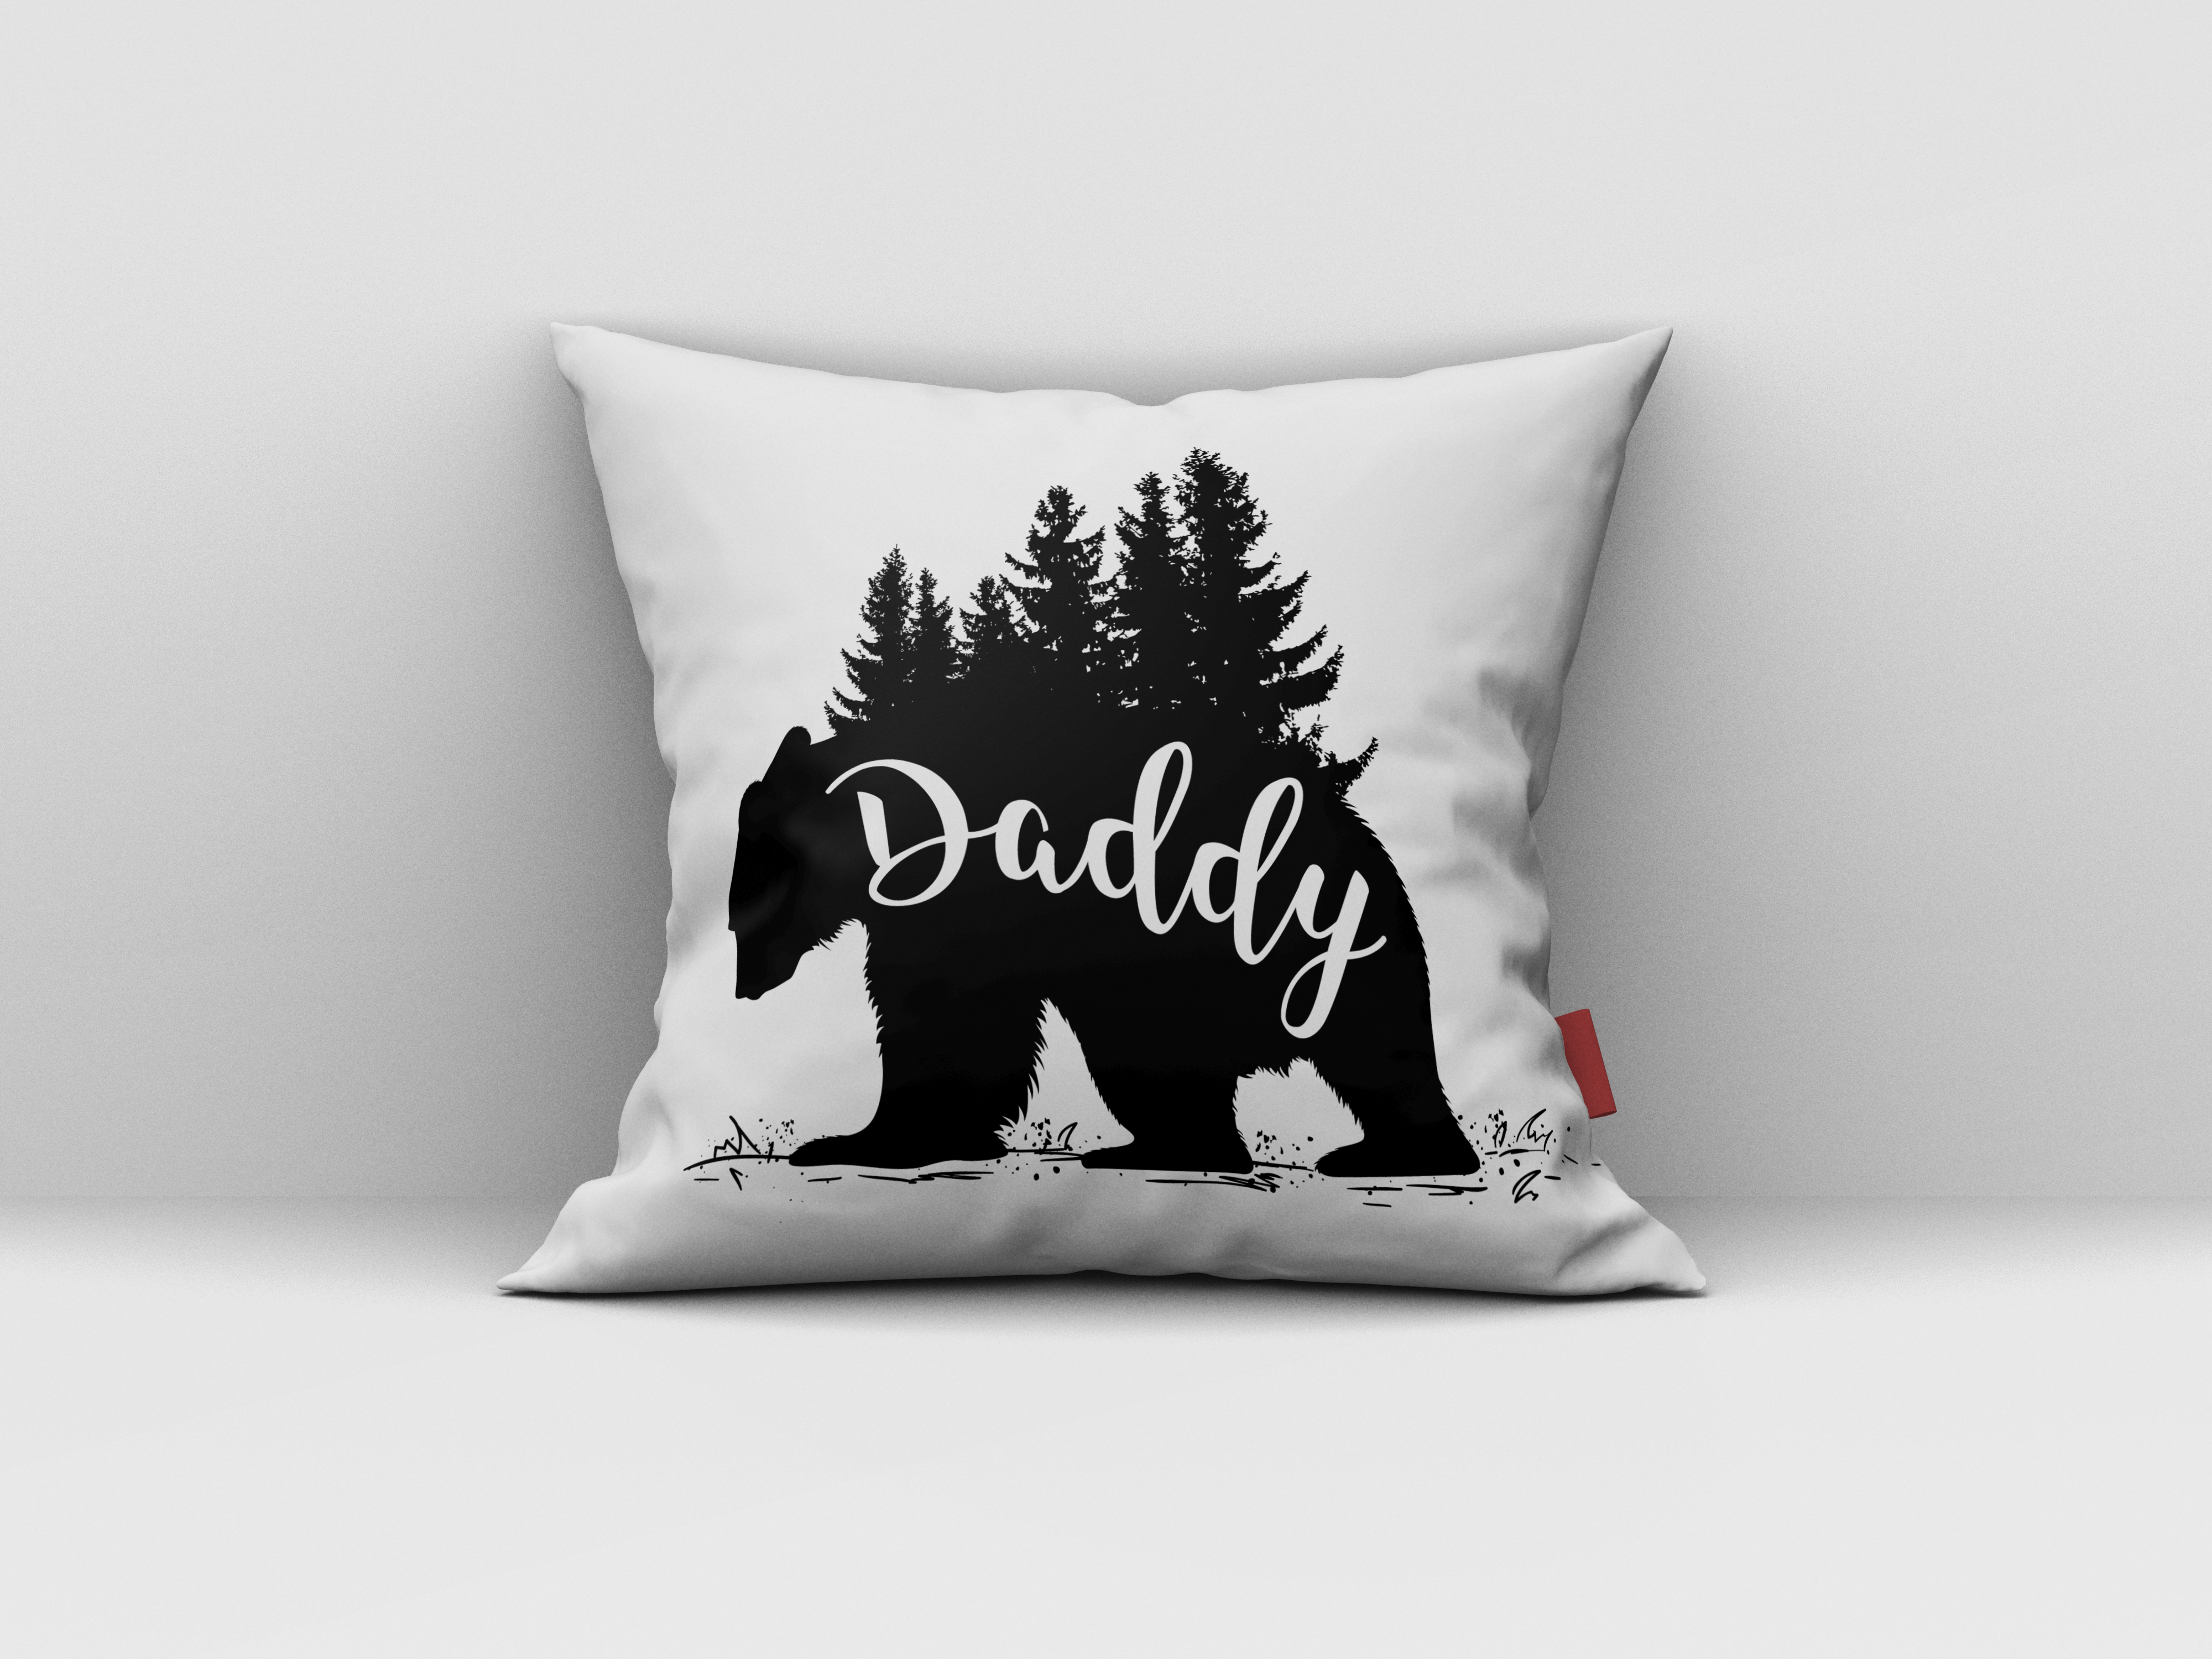 Download Free Daddy Bear Svg Design Graphic By Aartstudioexpo Creative Fabrica for Cricut Explore, Silhouette and other cutting machines.